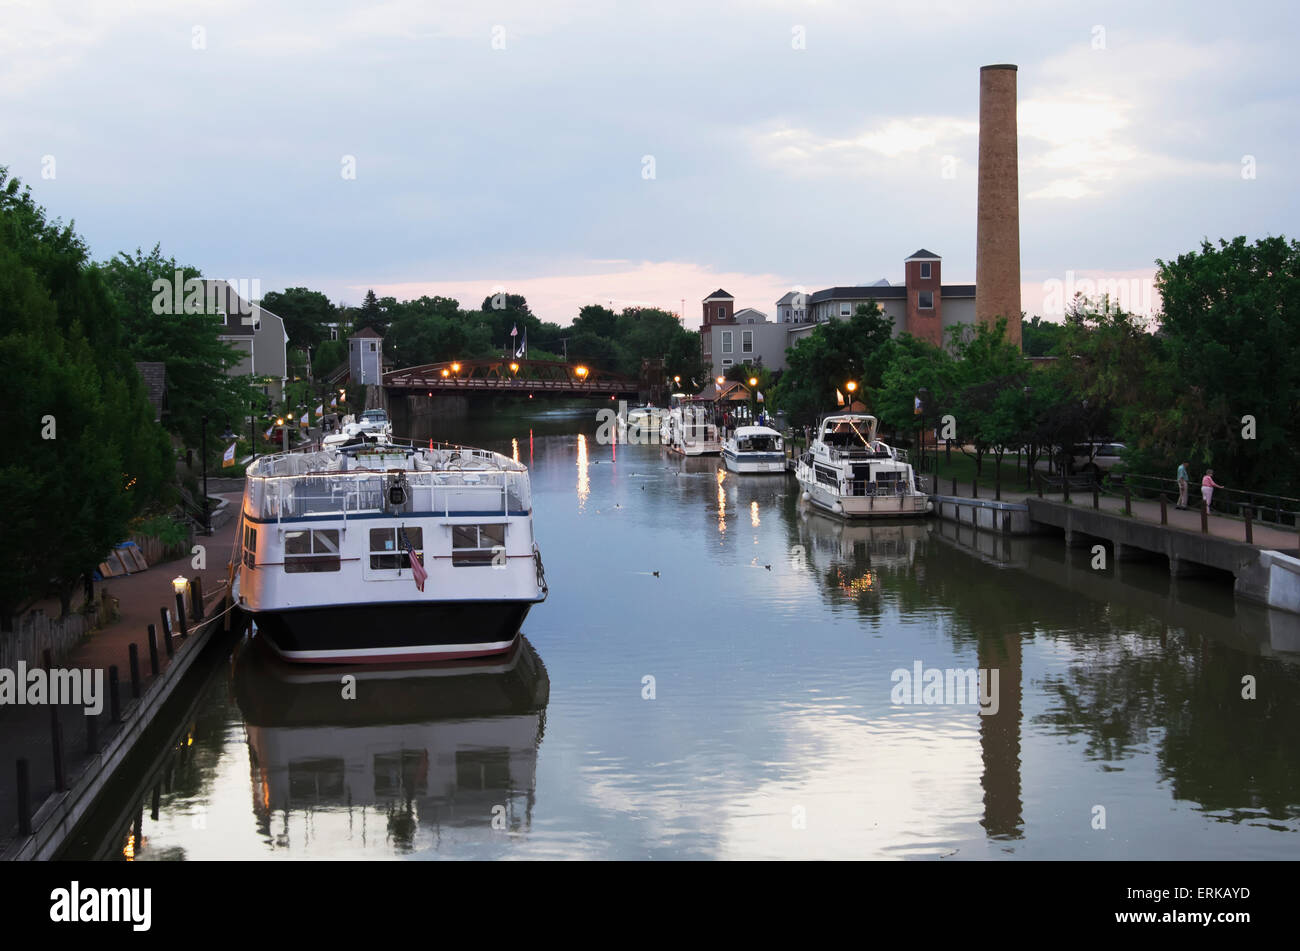 Canal,Boat,Moored,Bridge,Fairport,USA - Stock Image